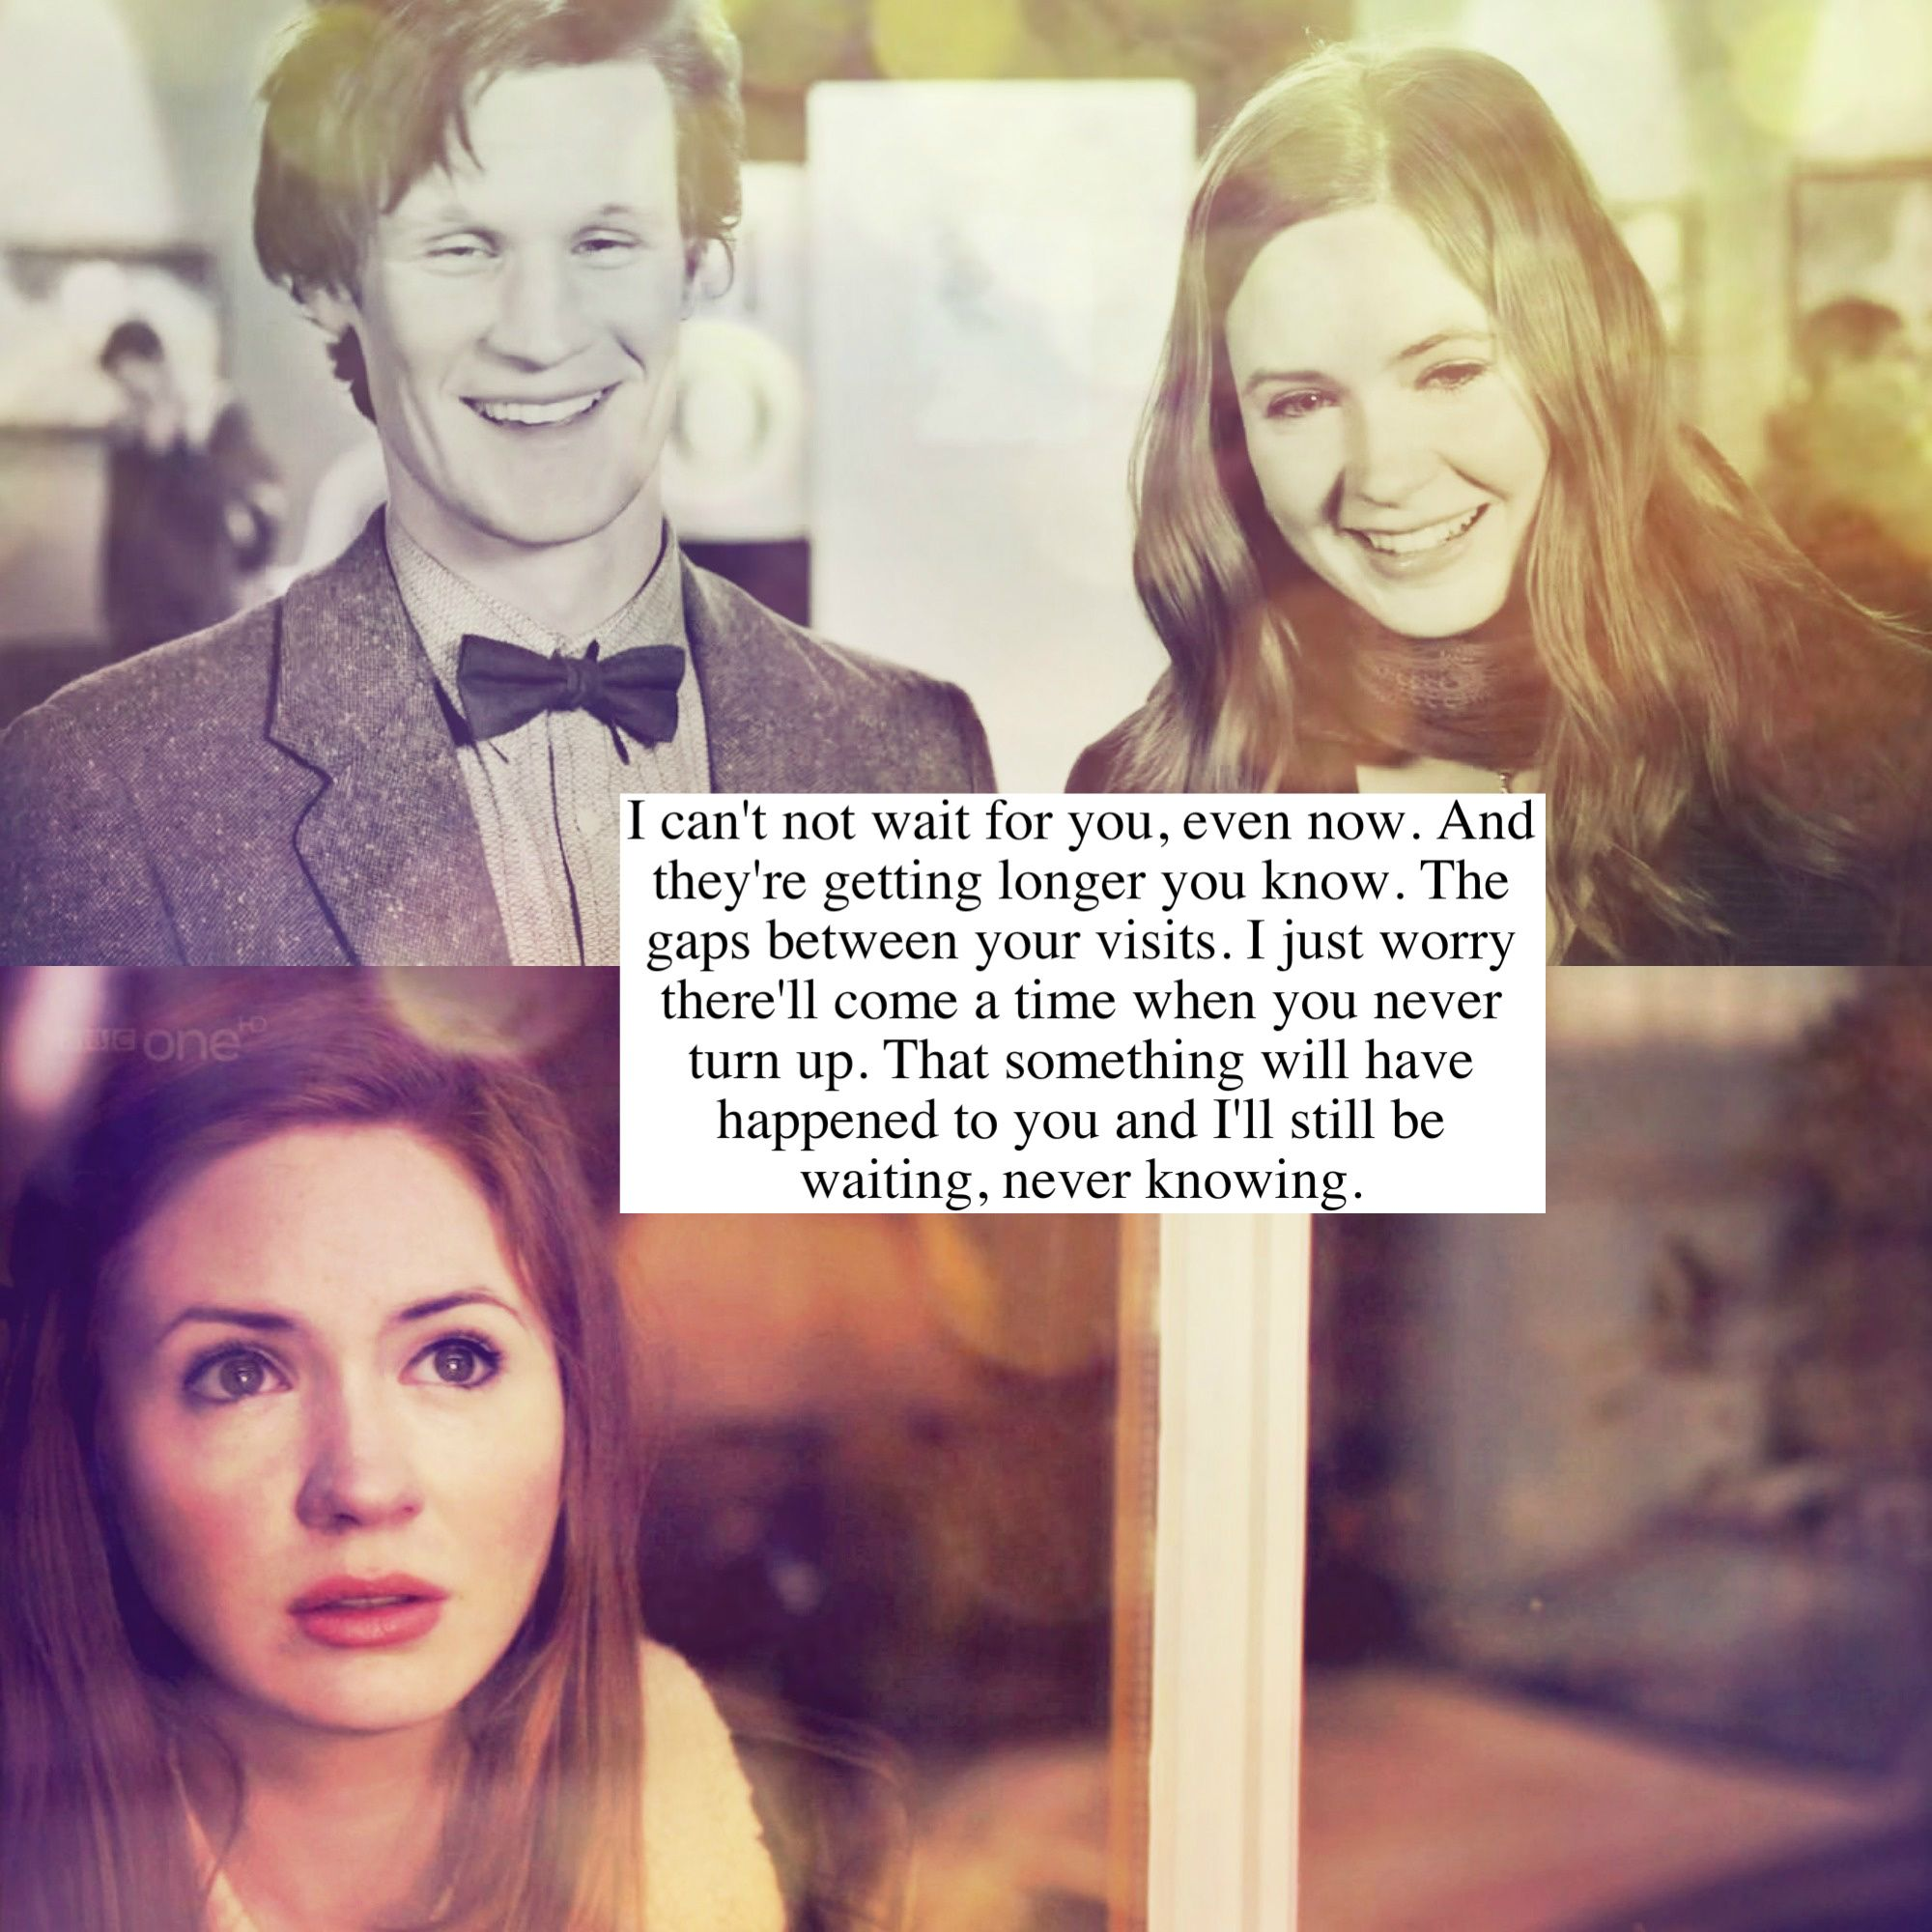 amy pond the girl who waited all night in her garden was it worth rh pinterest com